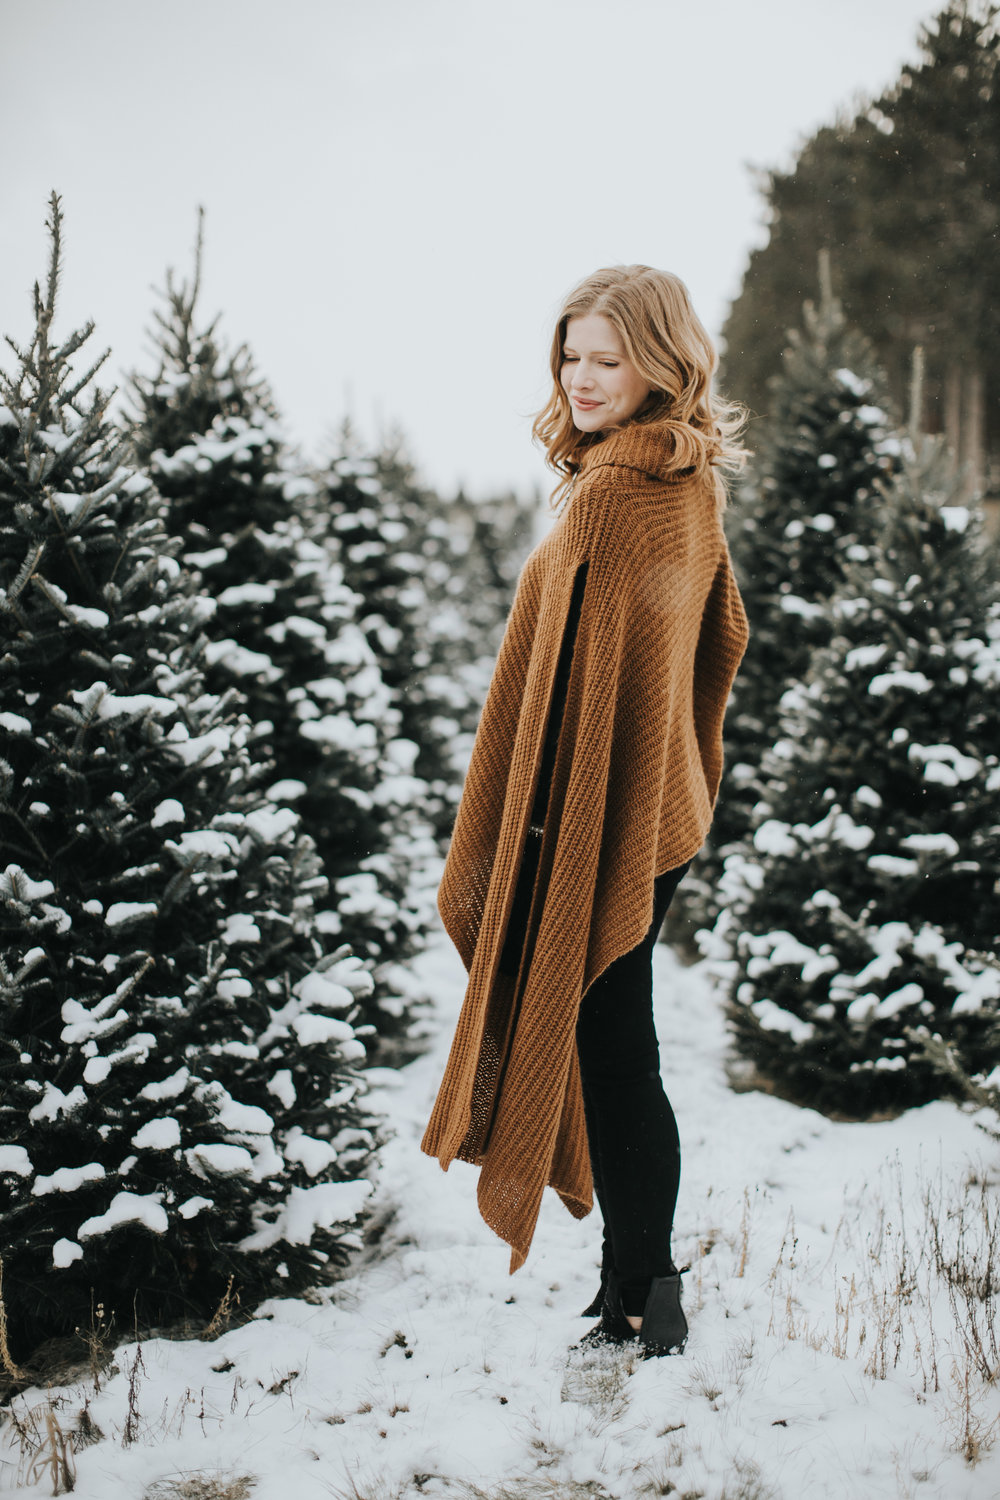 MainstreamBoutique-2018-Holiday-Russell-Heeter-Photography-234.jpg